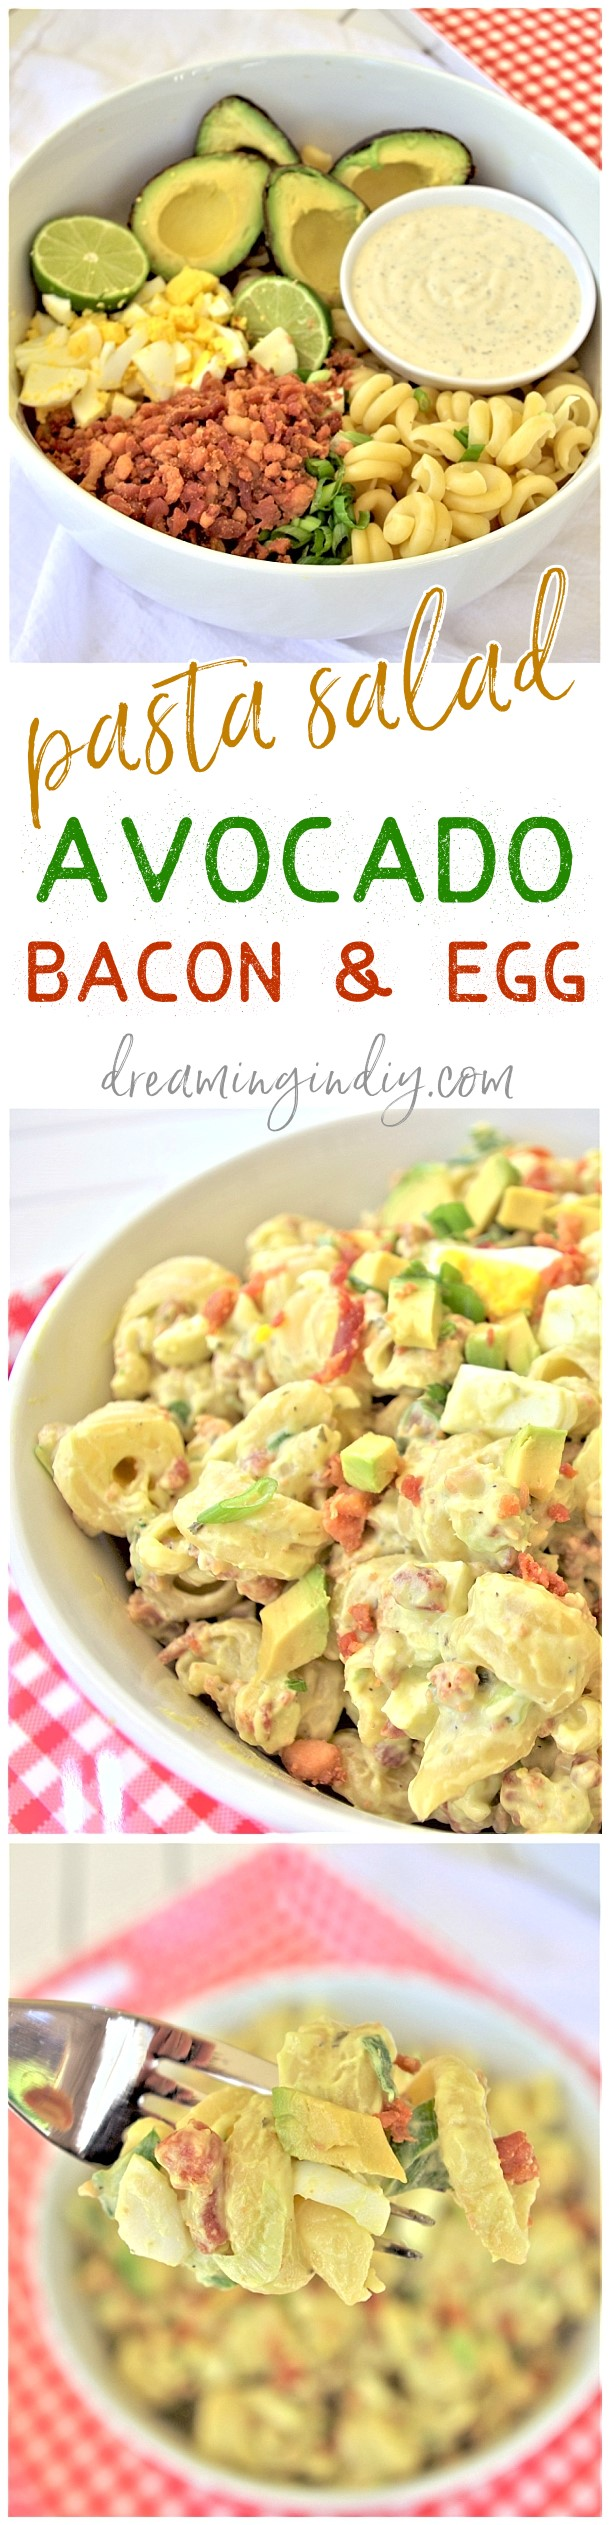 Avocado Egg and Bacon Pasta Salad Side Dish Recipe via Dreaming in DIY - This is the perfect easy and delicious pasta salad side dish. Bring it to 4th of July holiday celebrations, summer cookouts, fall tailgating lunch spreads, potlucks and backyard dinner parties! It tastes amazing immediately and even better after a few hours in the fridge! #avocadopastasalad #pastasalads #easypastasalads #potluck #barbecue #partyfood #tailgating #superbowl #bacon #simplerecipes #simplefamilyrecipes